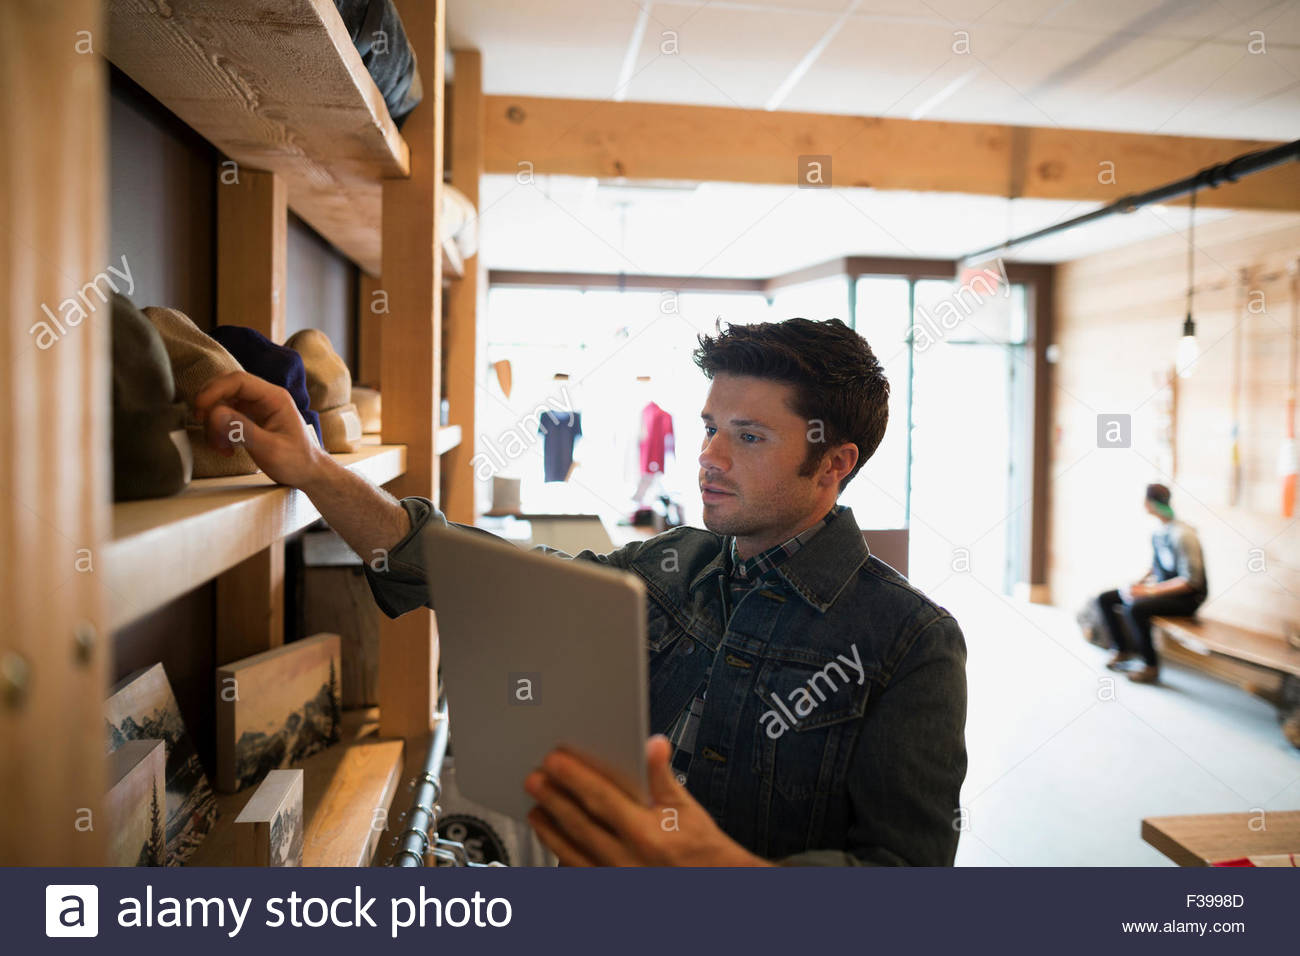 Worker with digital tablet in shop Photo Stock